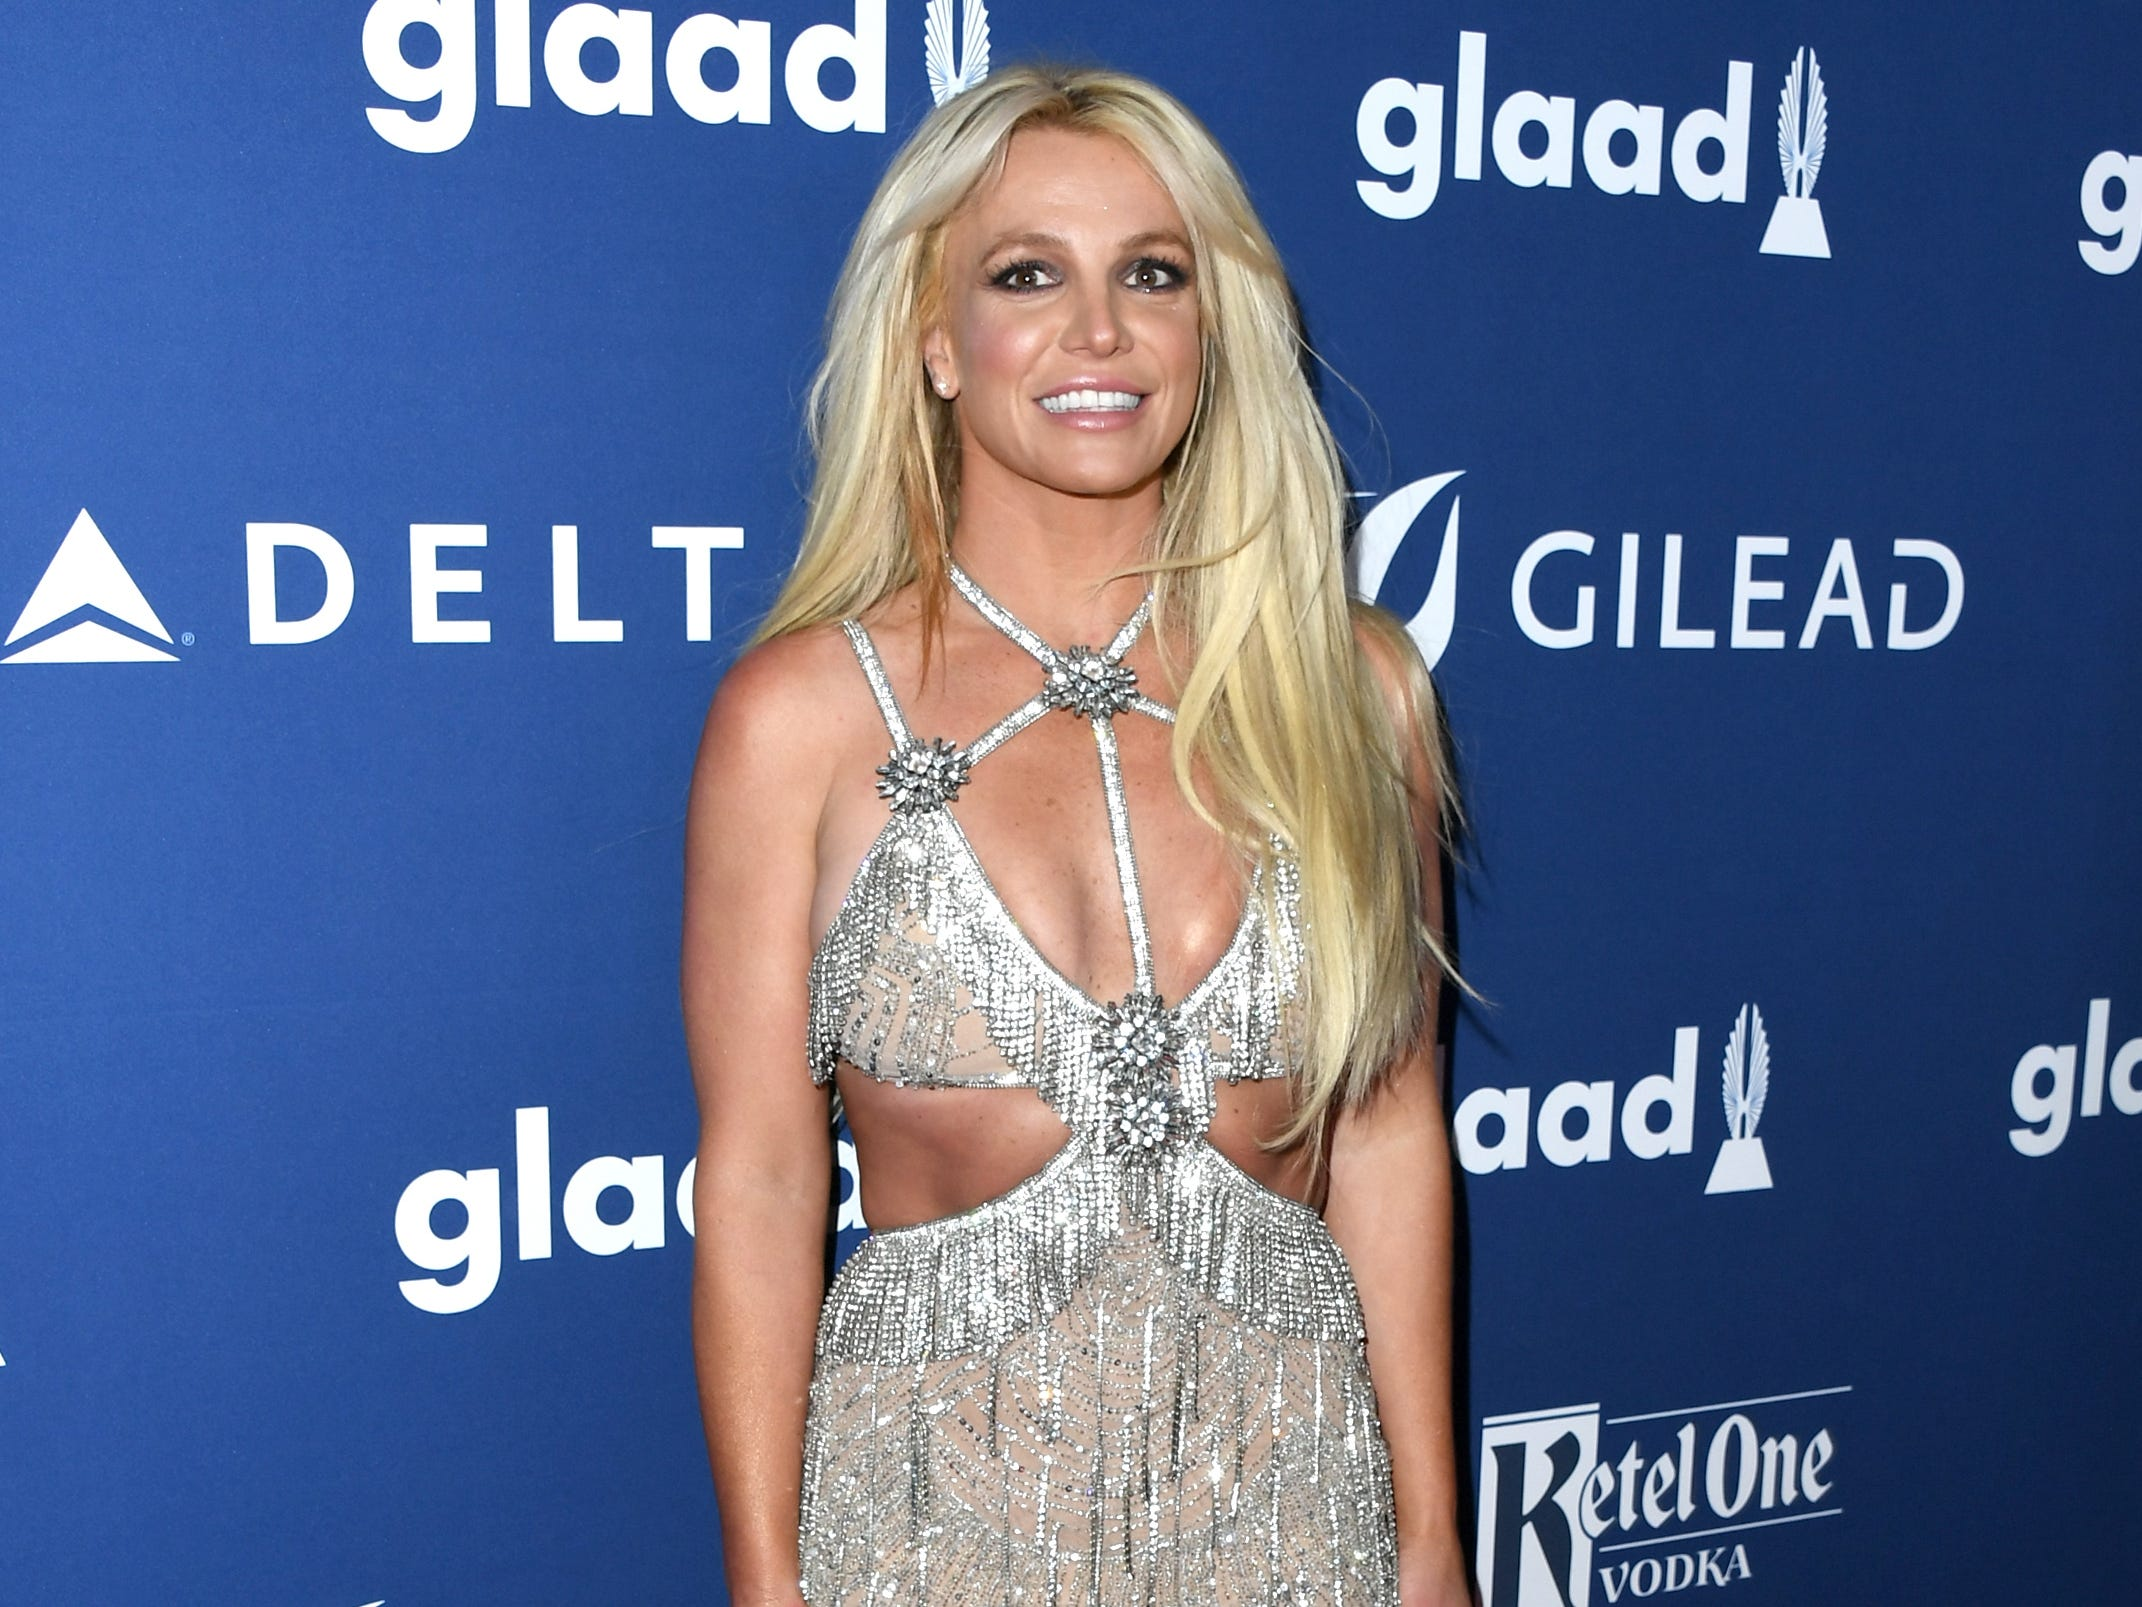 BEVERLY HILLS, CA - APRIL 12: Honoree Britney Spears attends the 29th Annual GLAAD Media Awards at The Beverly Hilton Hotel on April 12, 2018 in Beverly Hills, California.  (Photo by Jon Kopaloff/FilmMagic) ORG XMIT: 775150375 ORIG FILE ID: 945518494